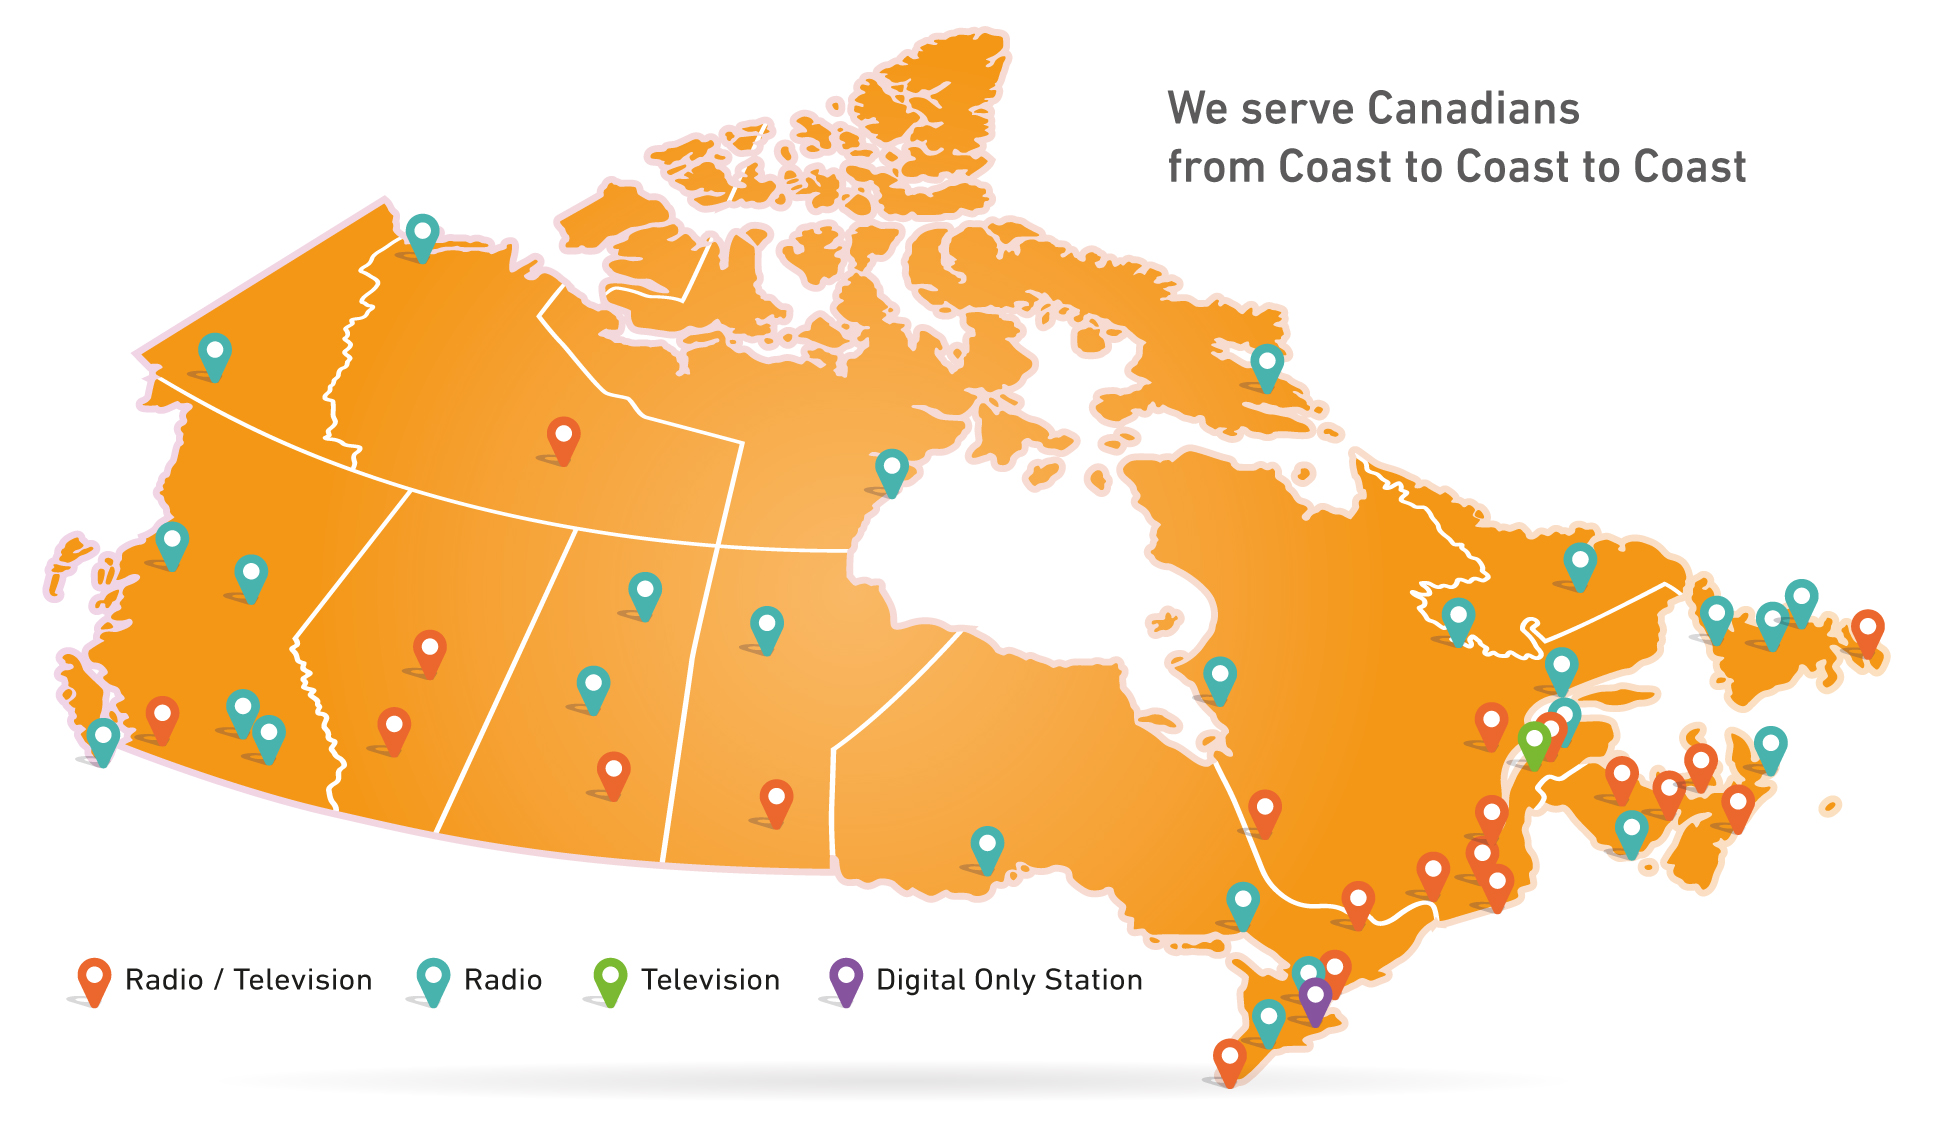 source map of cbc radio canada stations including affiliates september 2016